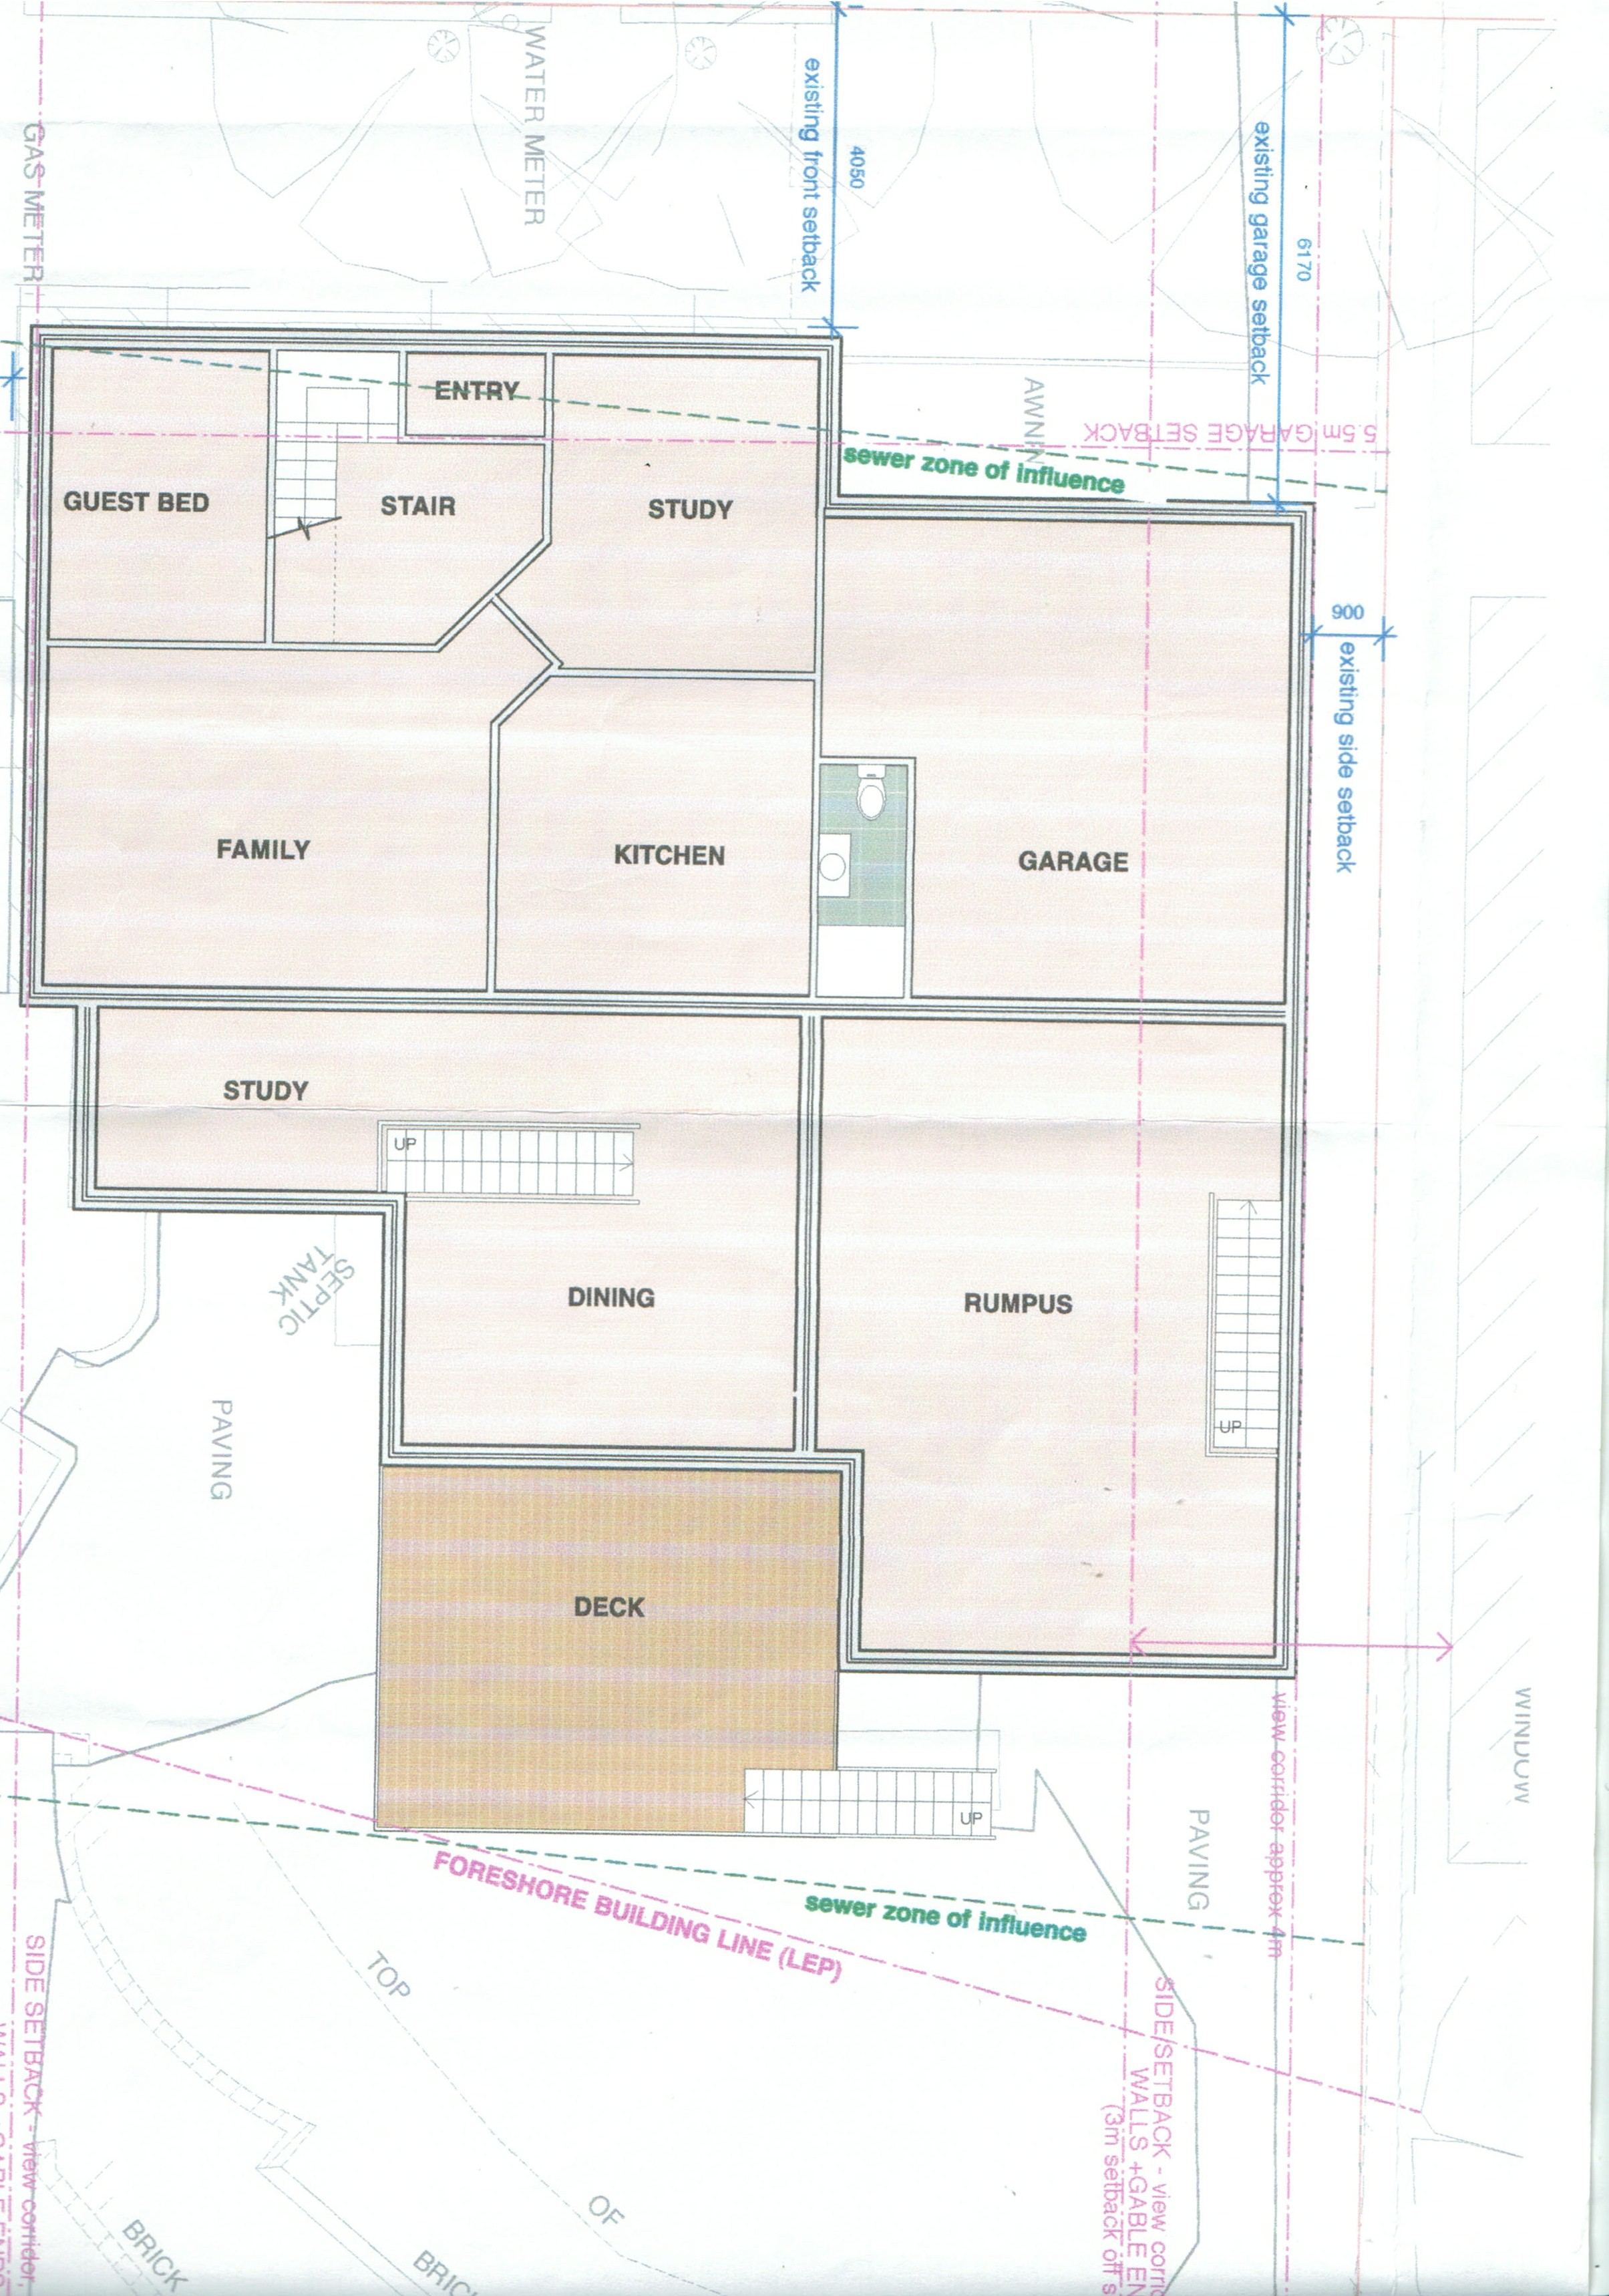 Plans - New Residence